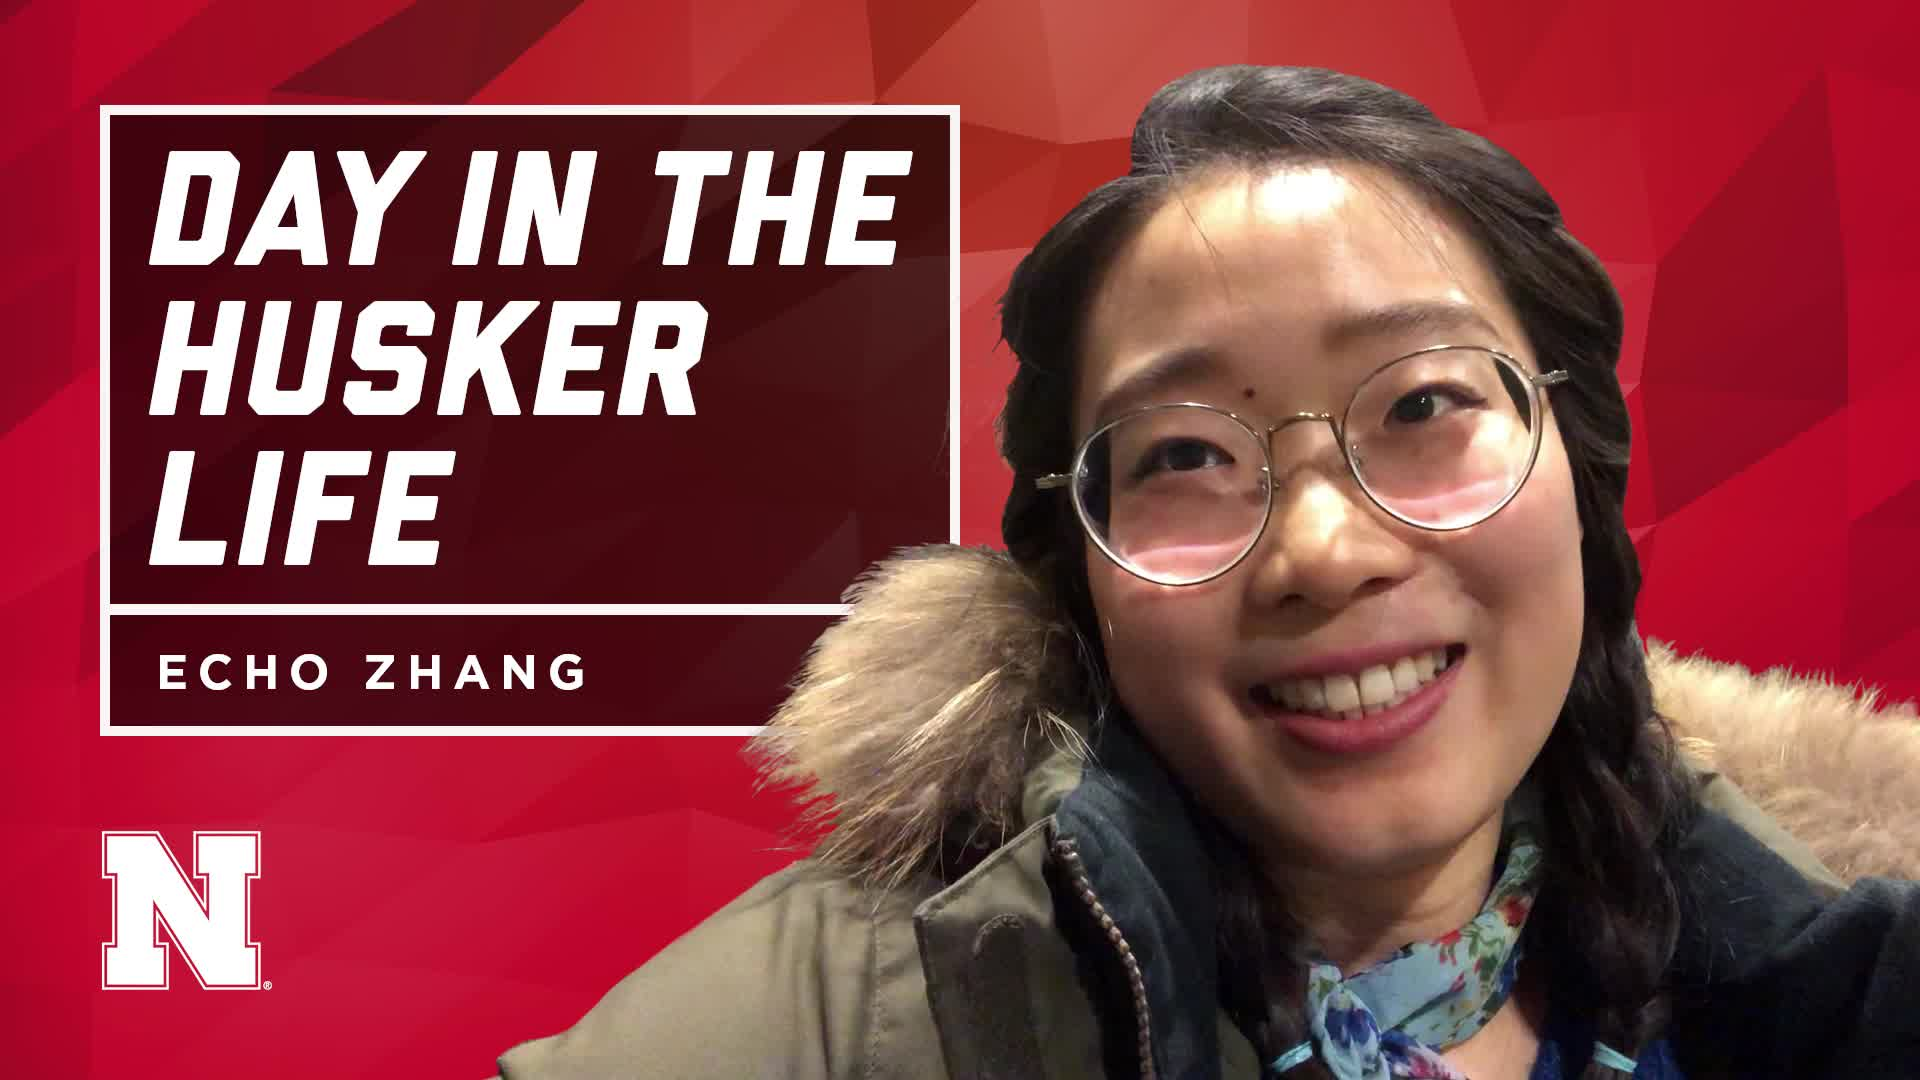 Day in the Husker Life | Echo Zhang | China